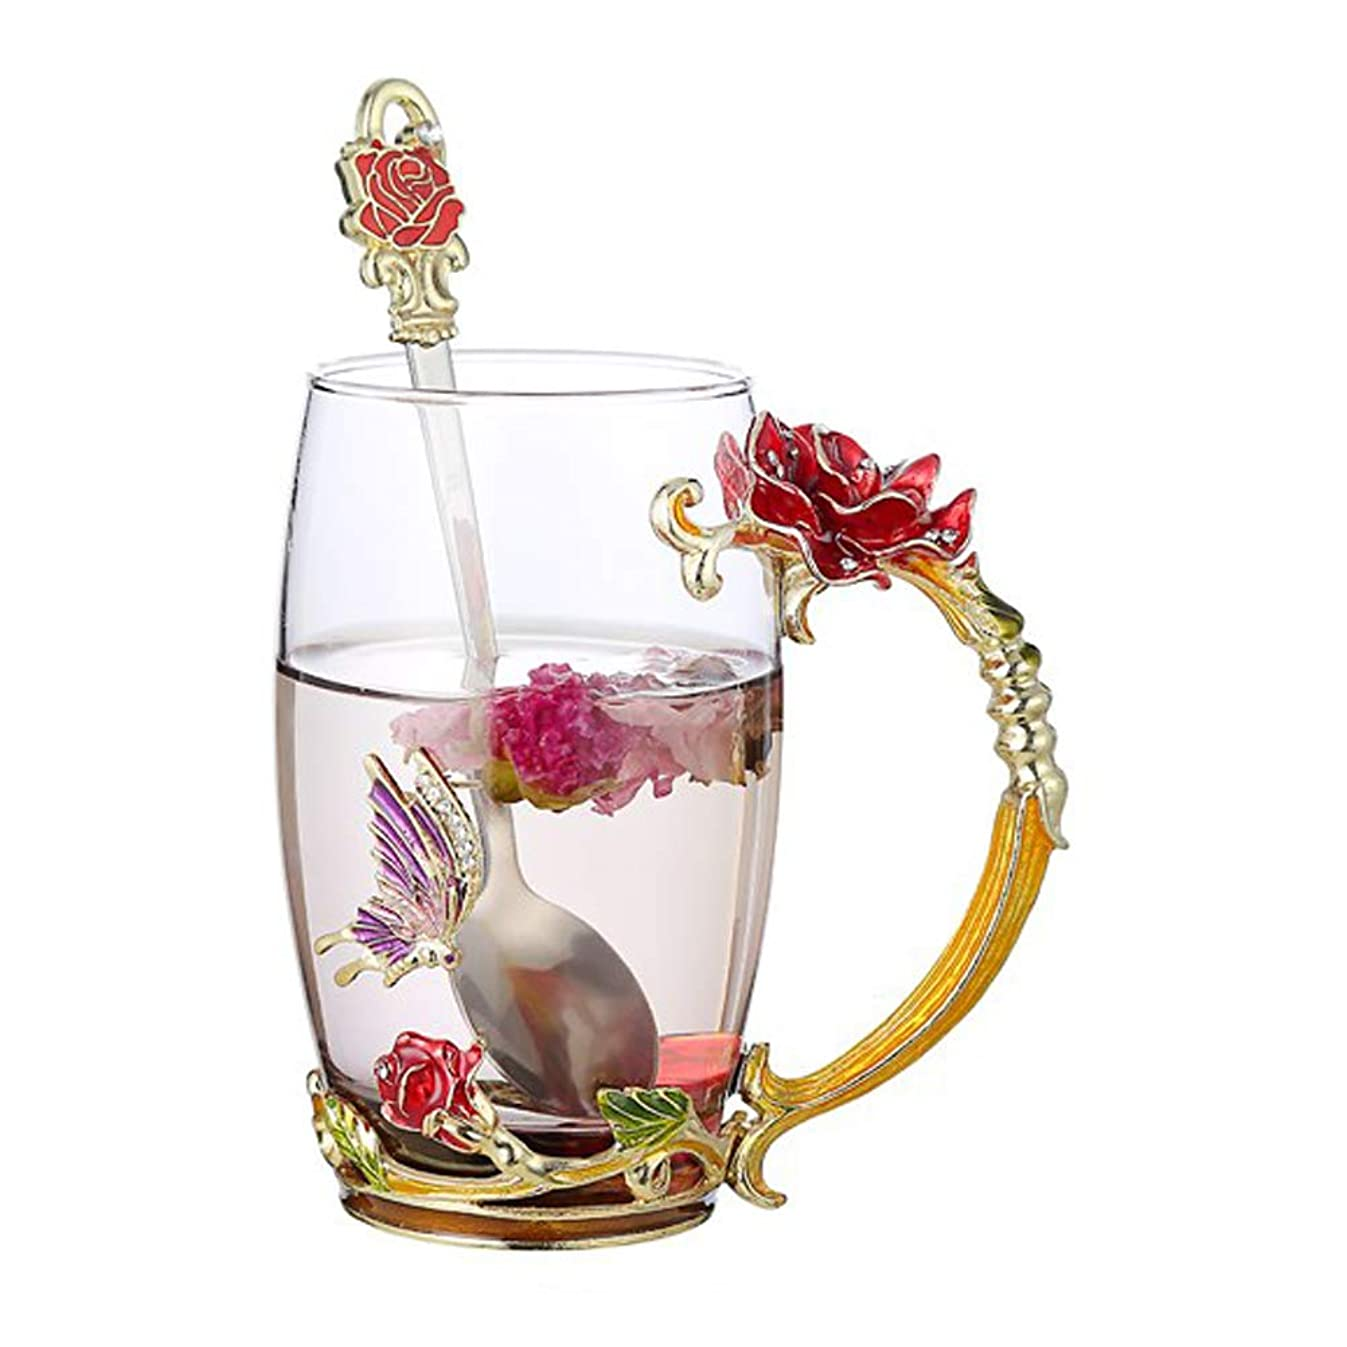 Tebery Tea Cup Coffee Mug Cups with Spoon Handmade Butterfly Rose Glass Coffee Cups Tea Mugs for Friend Wedding Anniversary Birthday Mother's Day Presents, 13oz